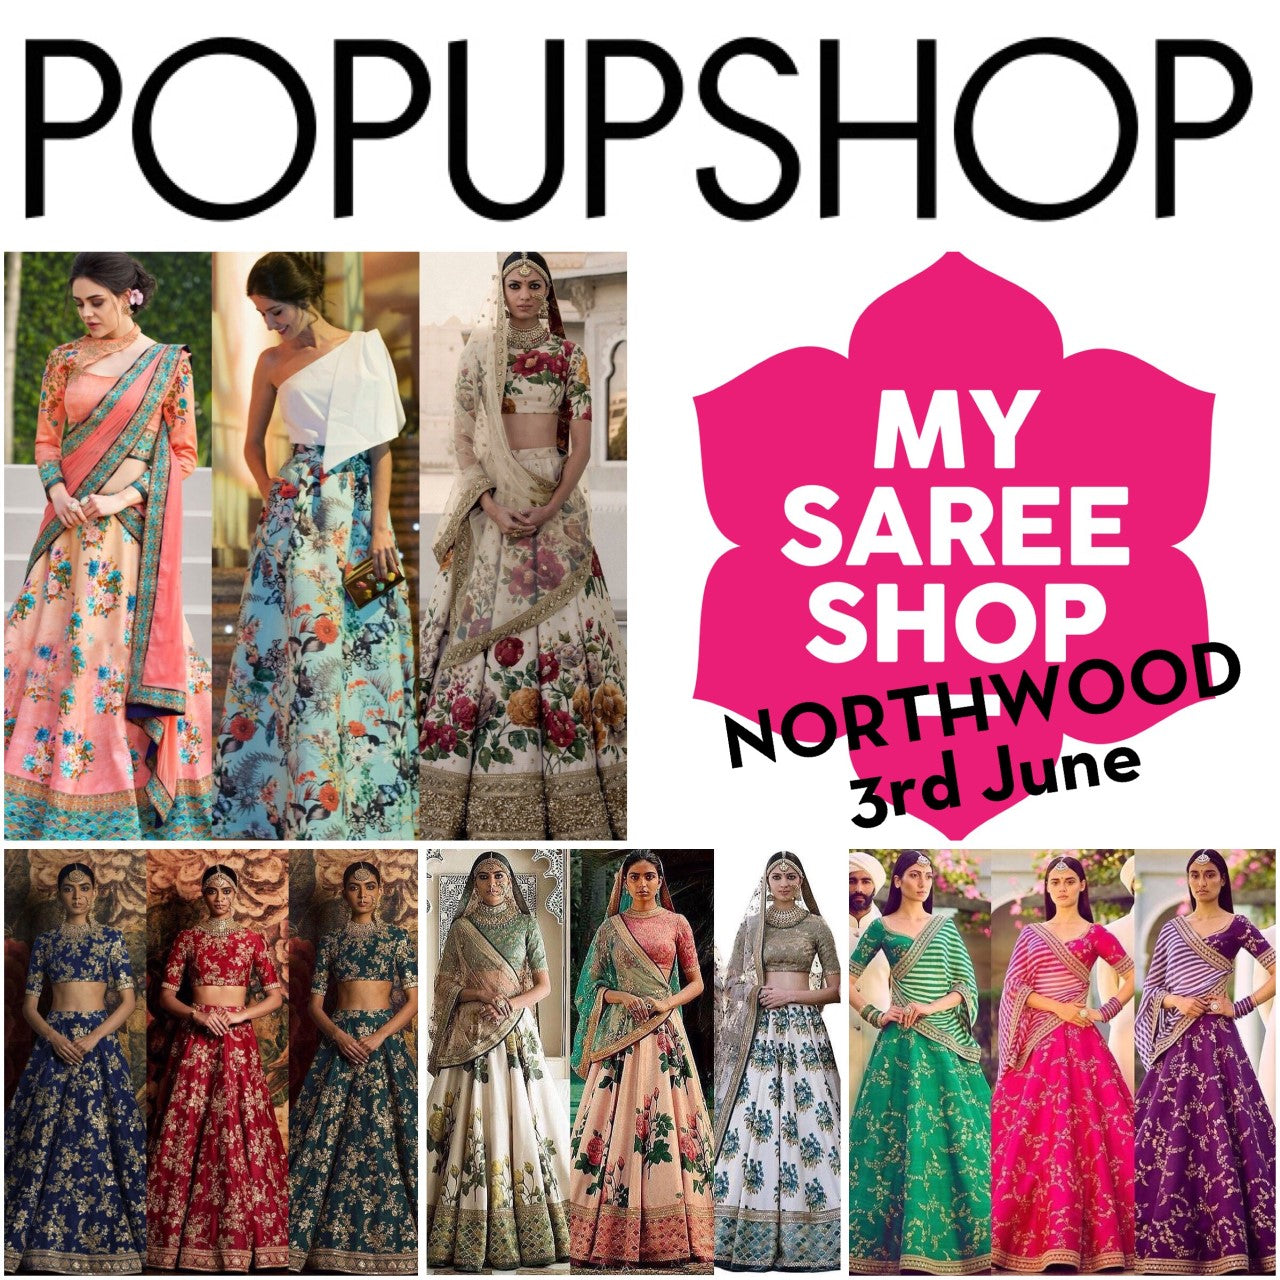 MYSAREESHOP - POPupSHOP - 3rd June - NORTHWOOD